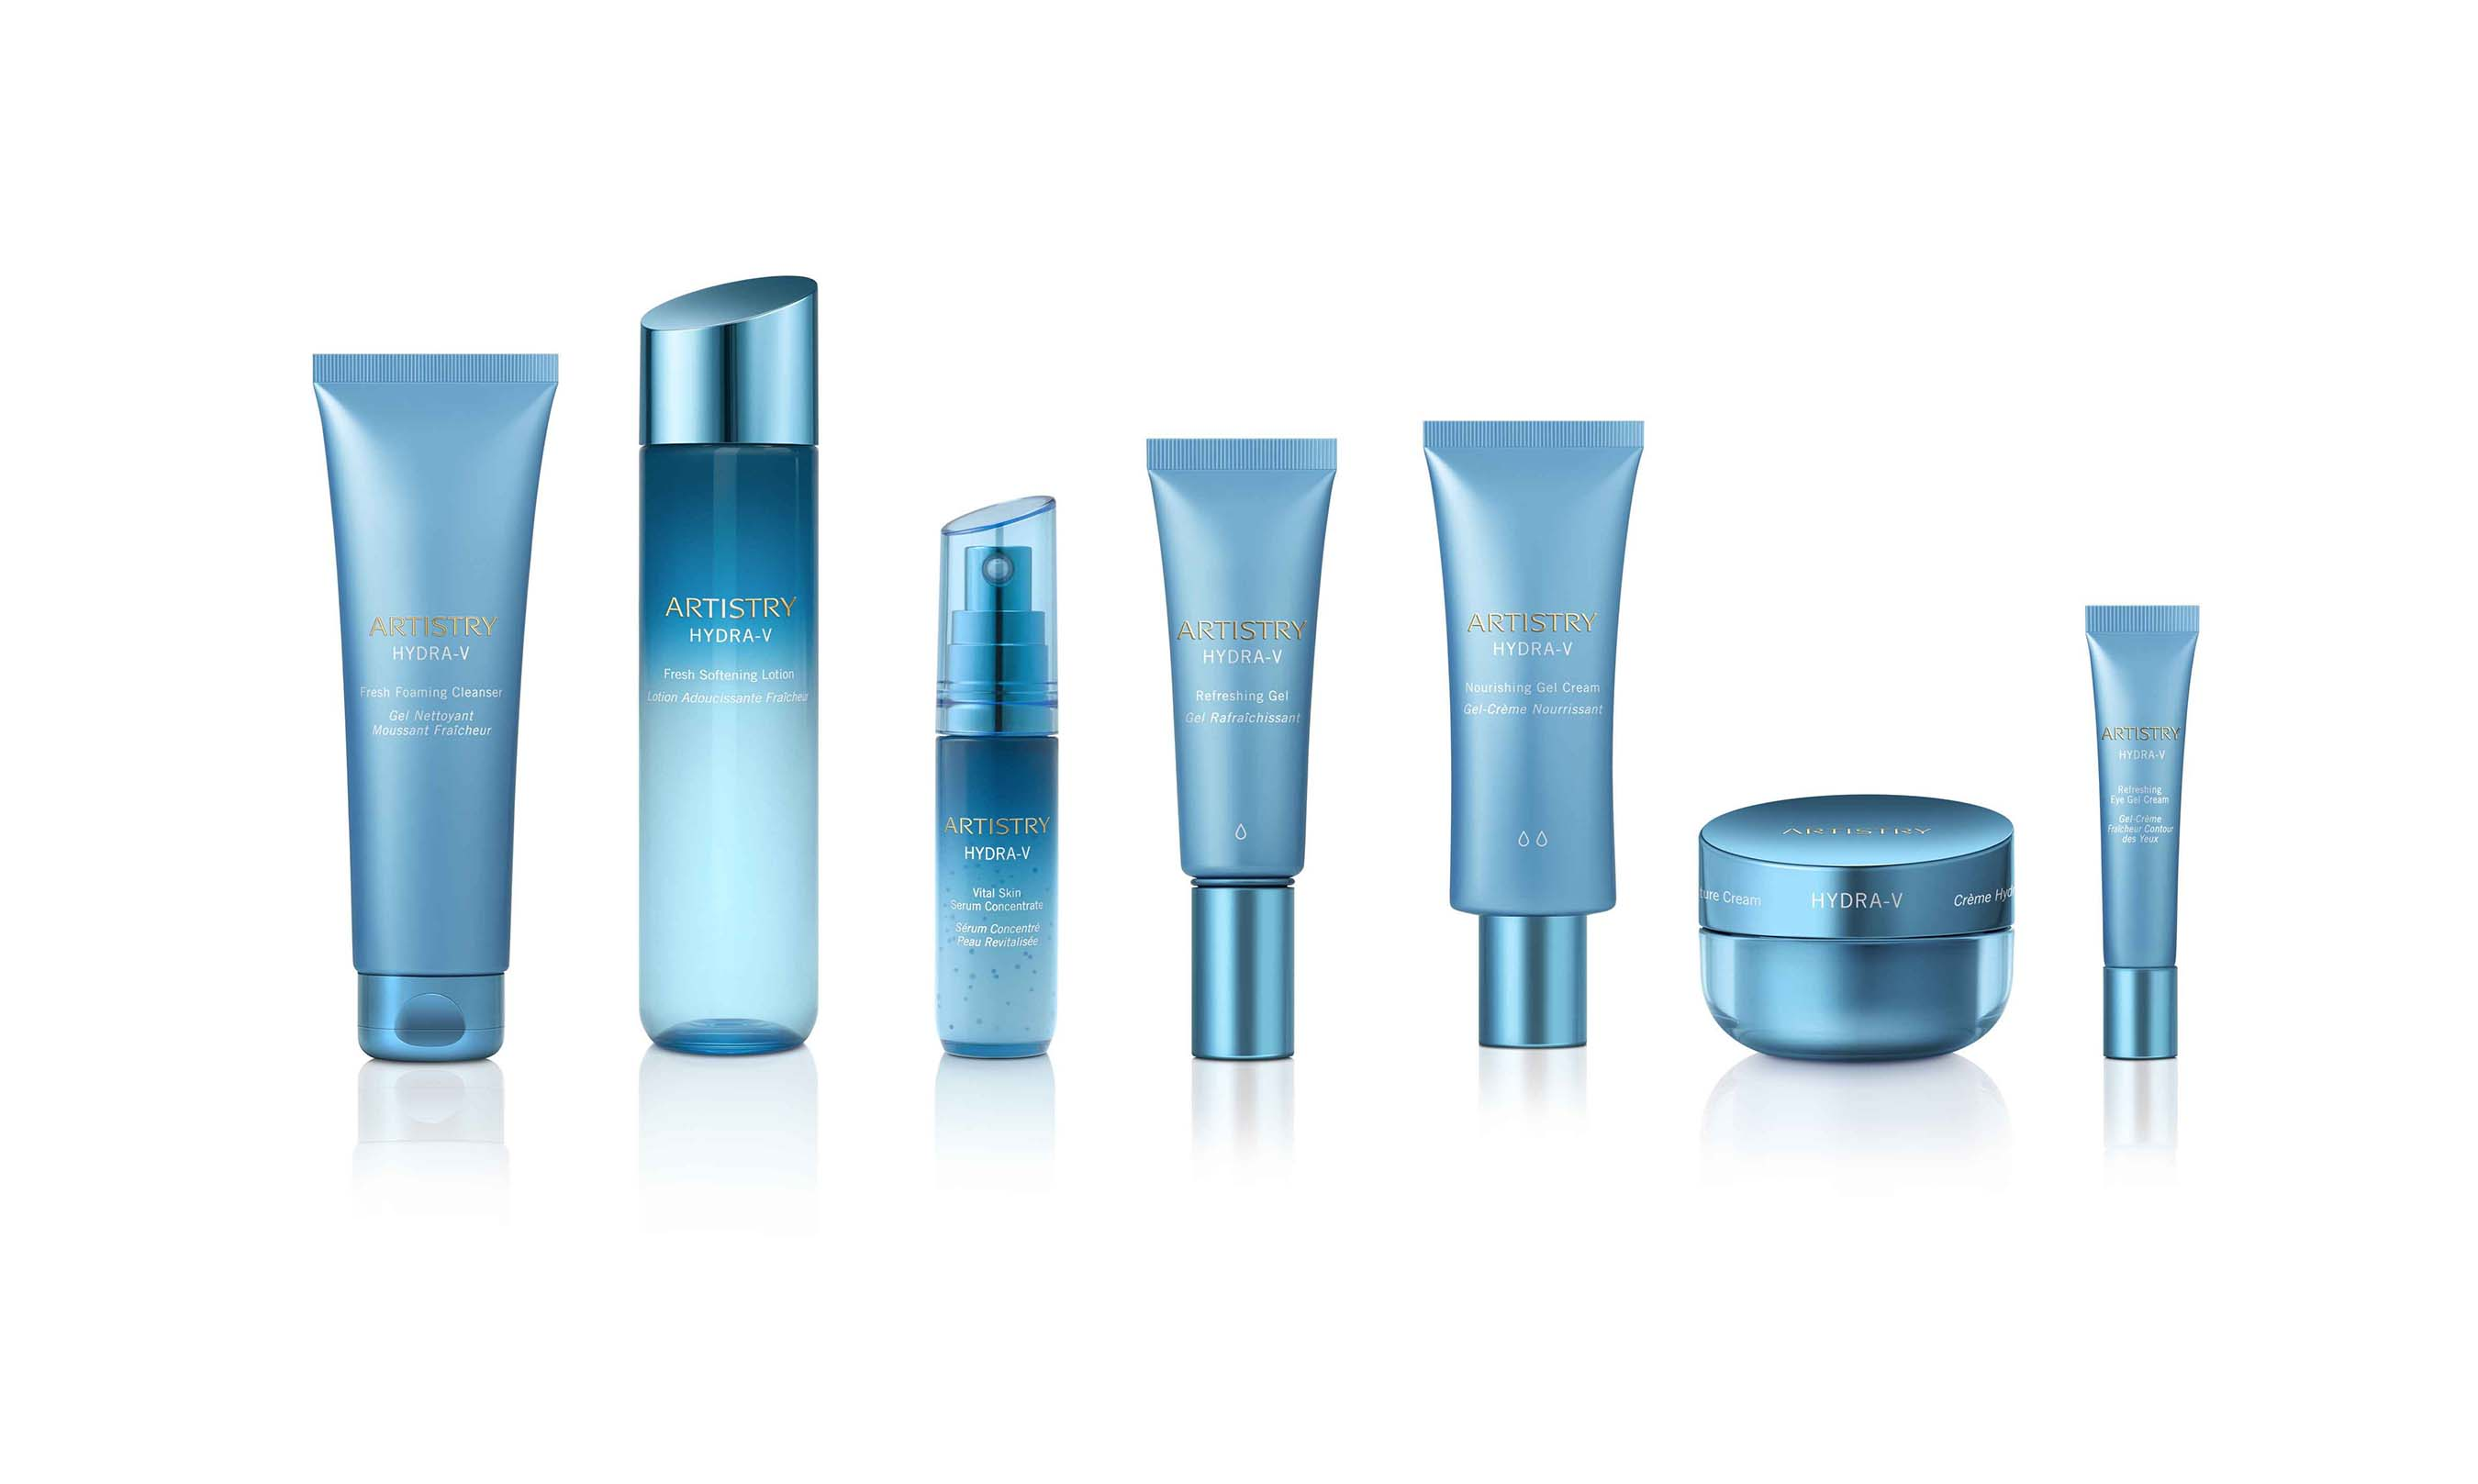 Artistry scientists leveraged pristine ingredients to optimize skin's natural condition and hydration process.